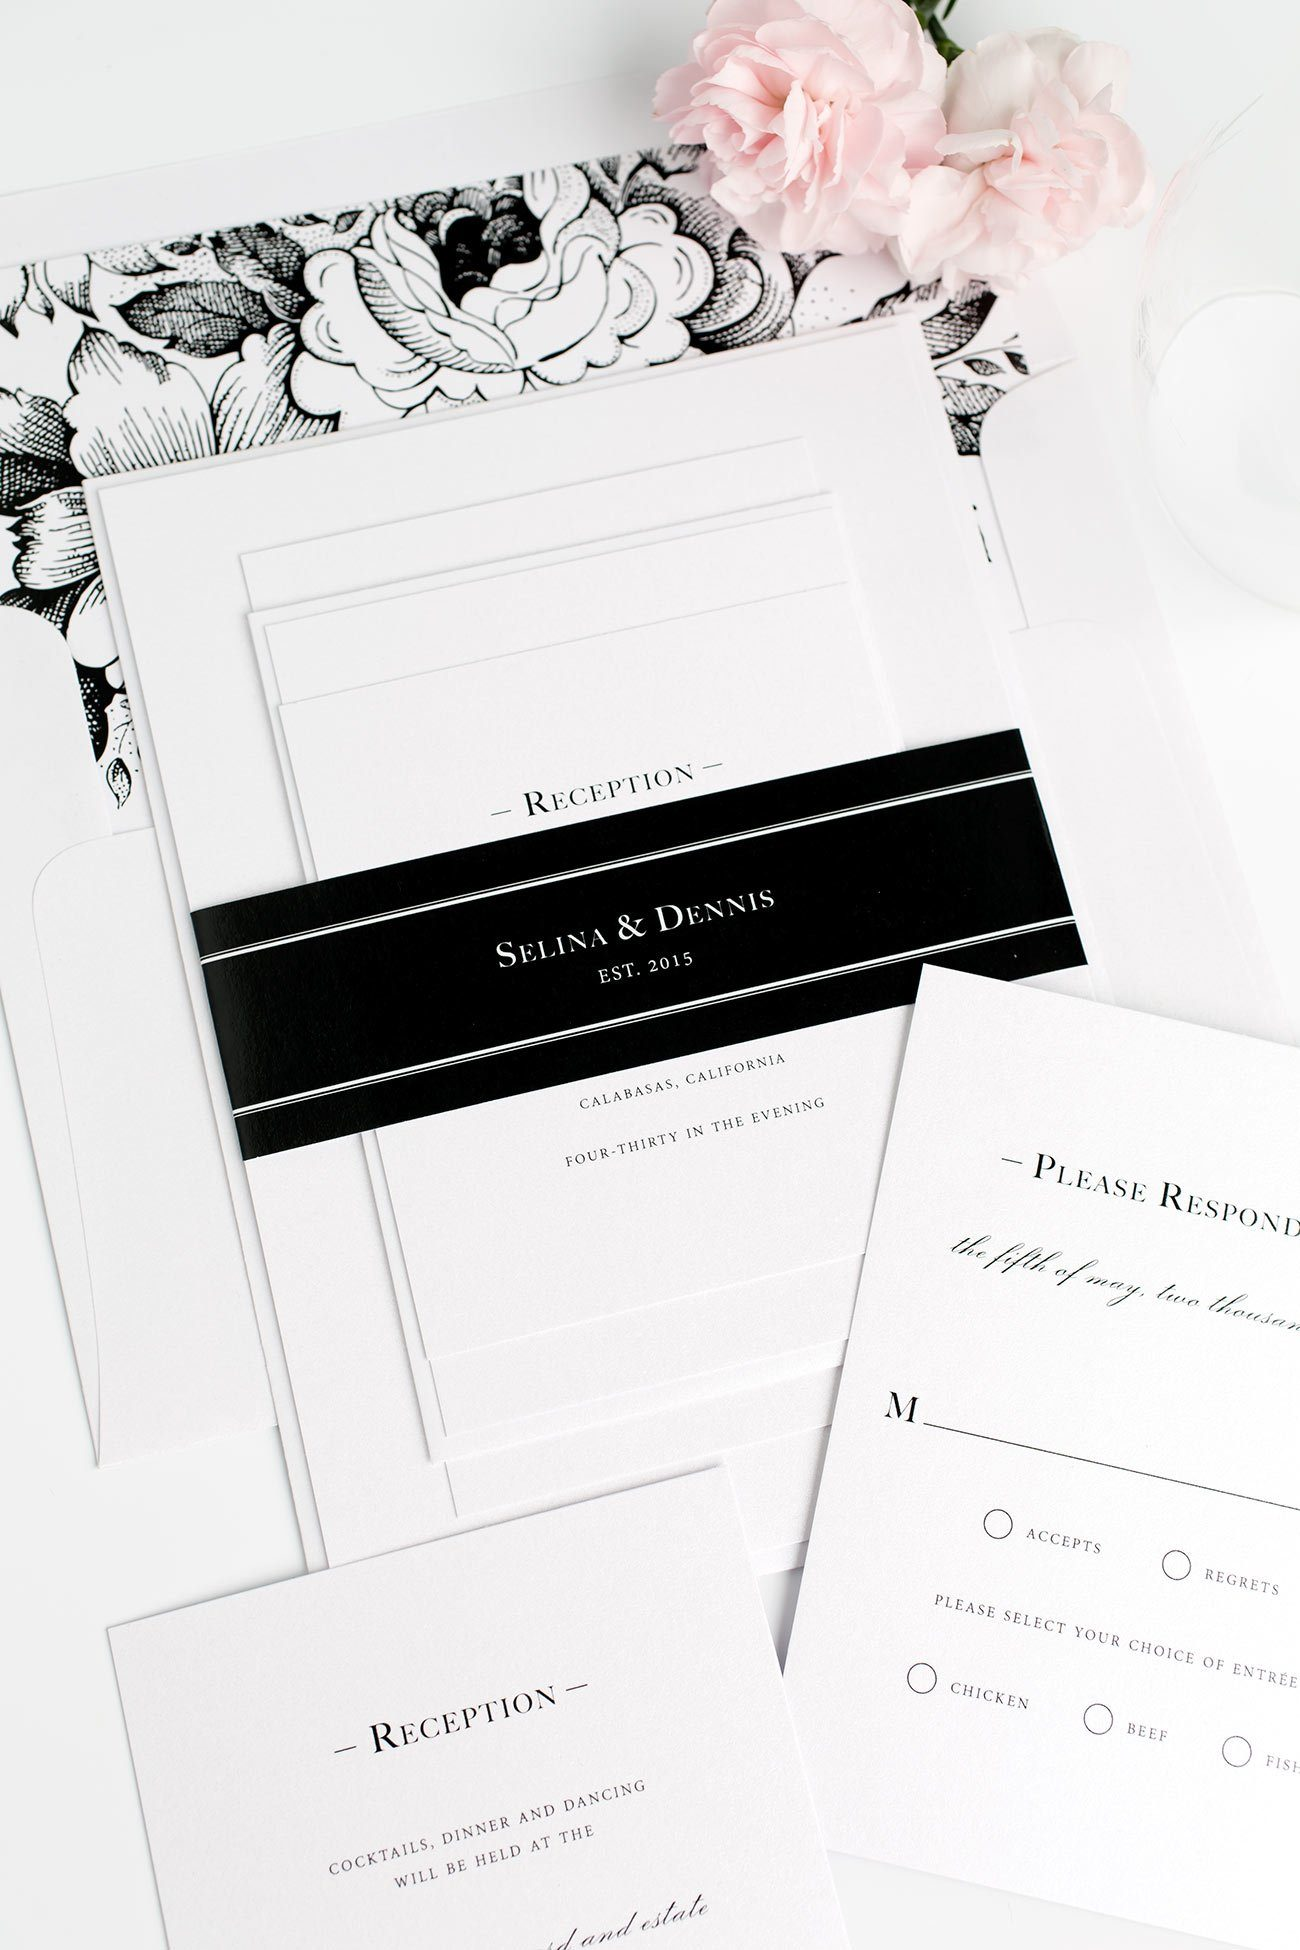 Black and White Floral Wedding Invitations with a Monogram